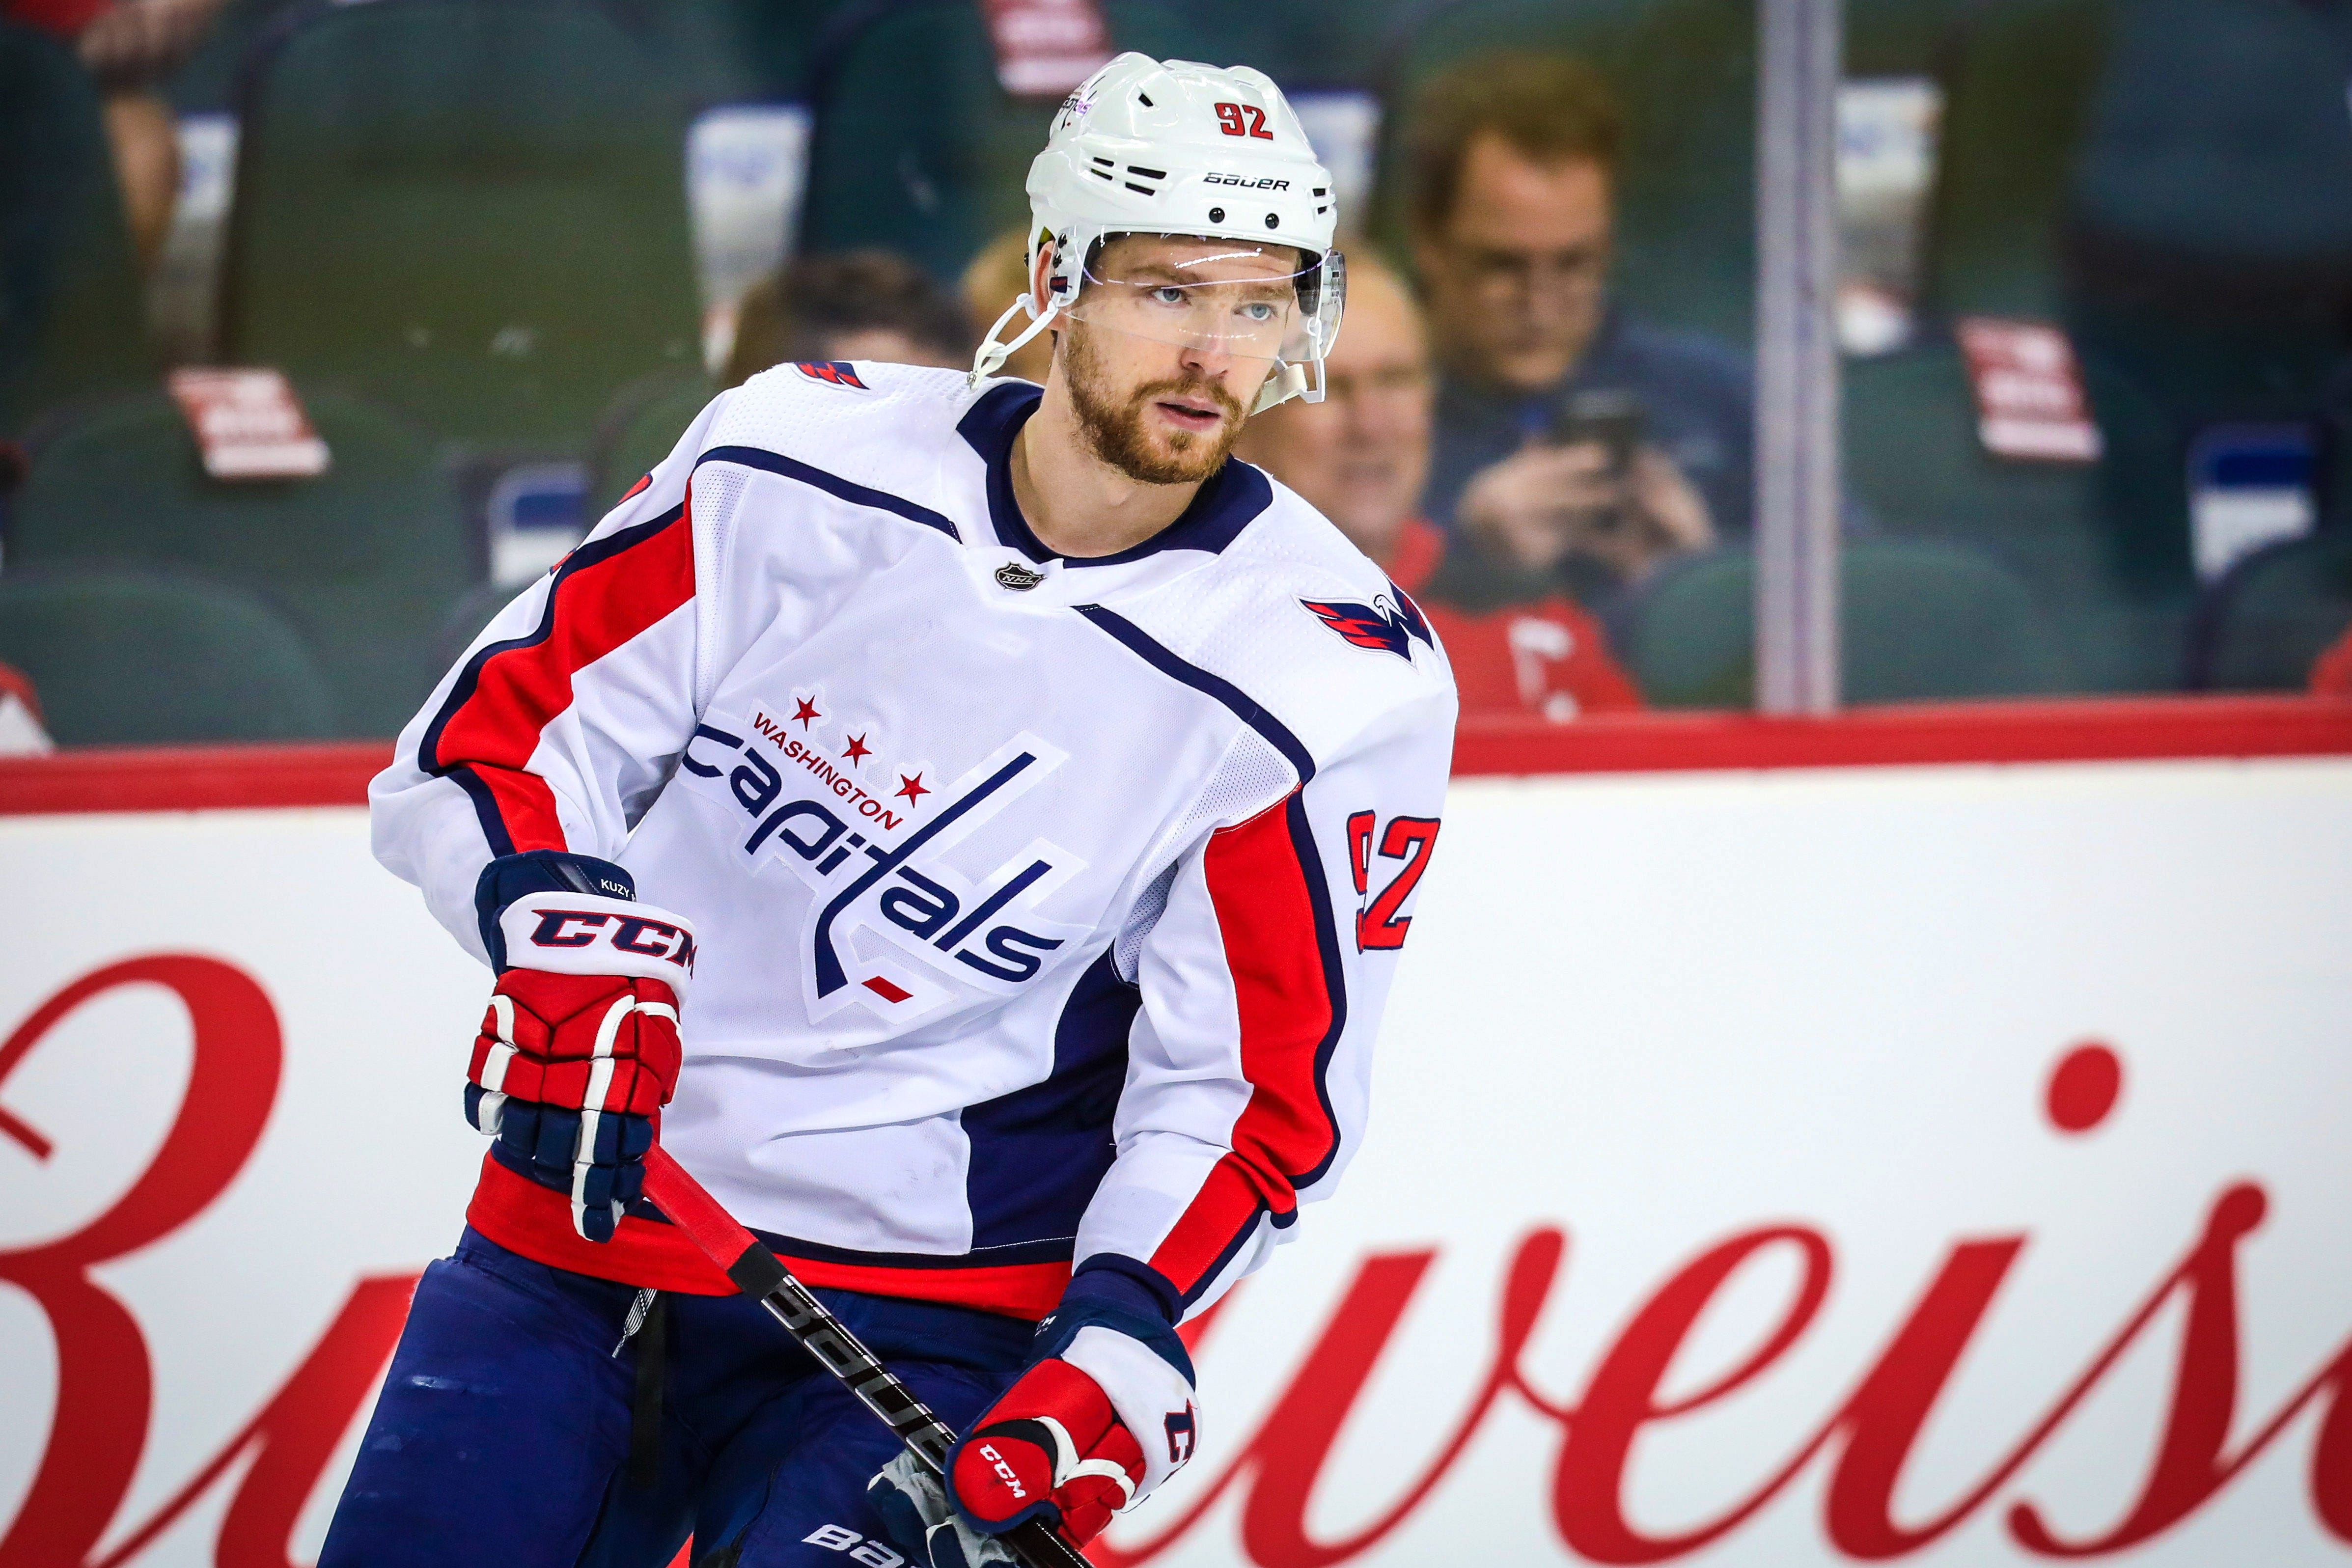 Capitals forward grabs opponent's stick, then gets penalized for trying to use it